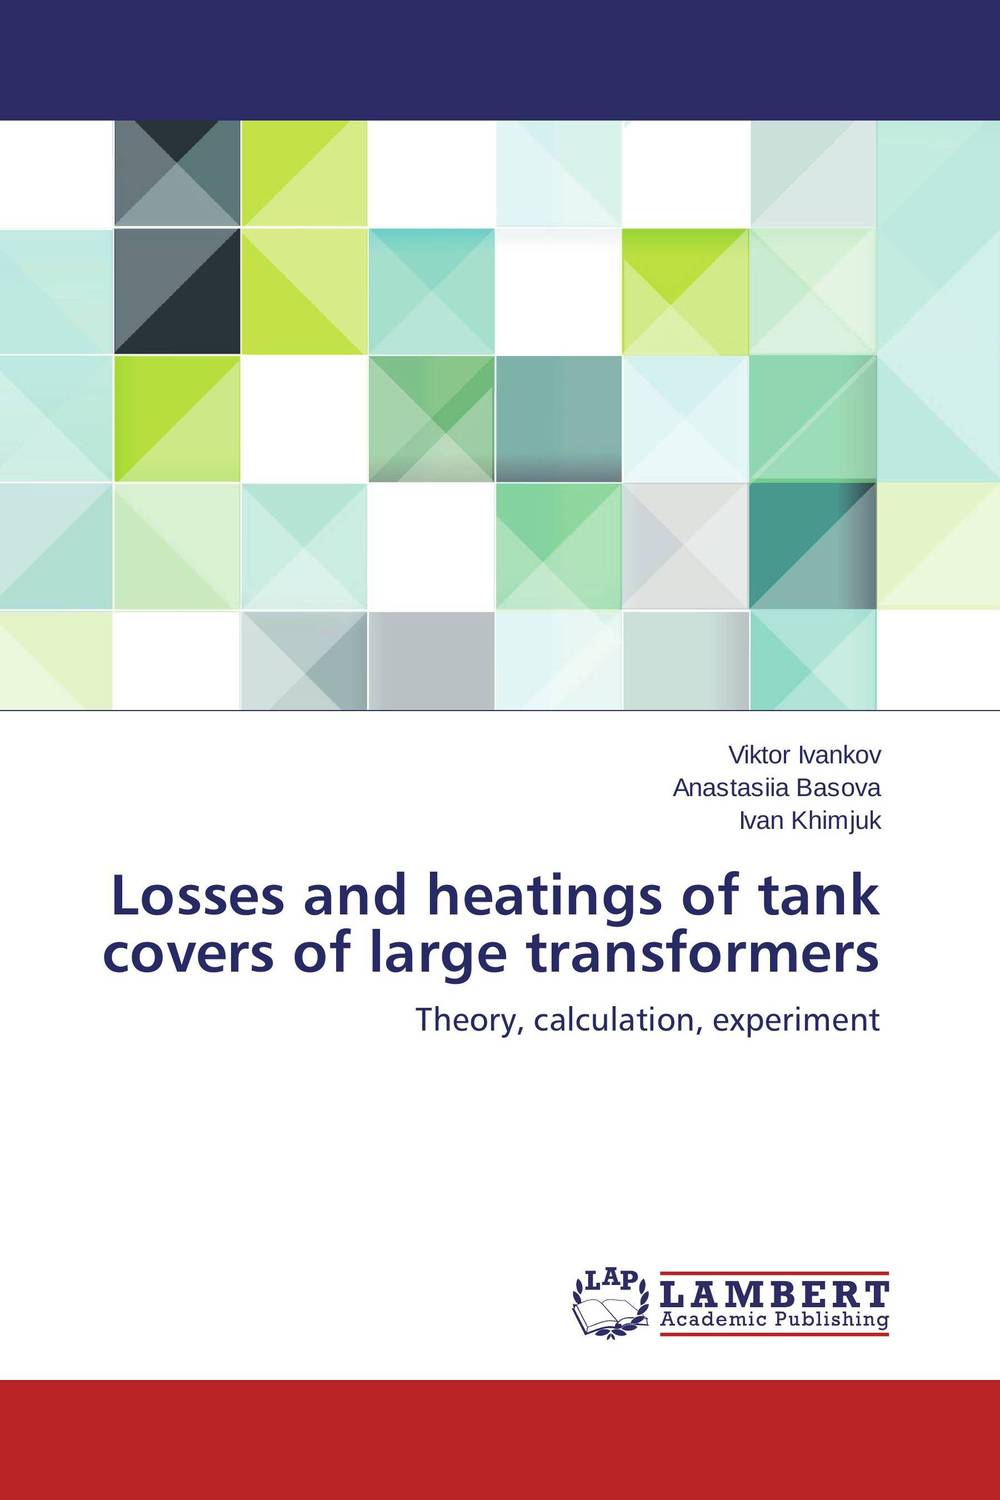 Losses and heatings of tank covers of large transformers suleman dangor shaykh yusuf of macassar